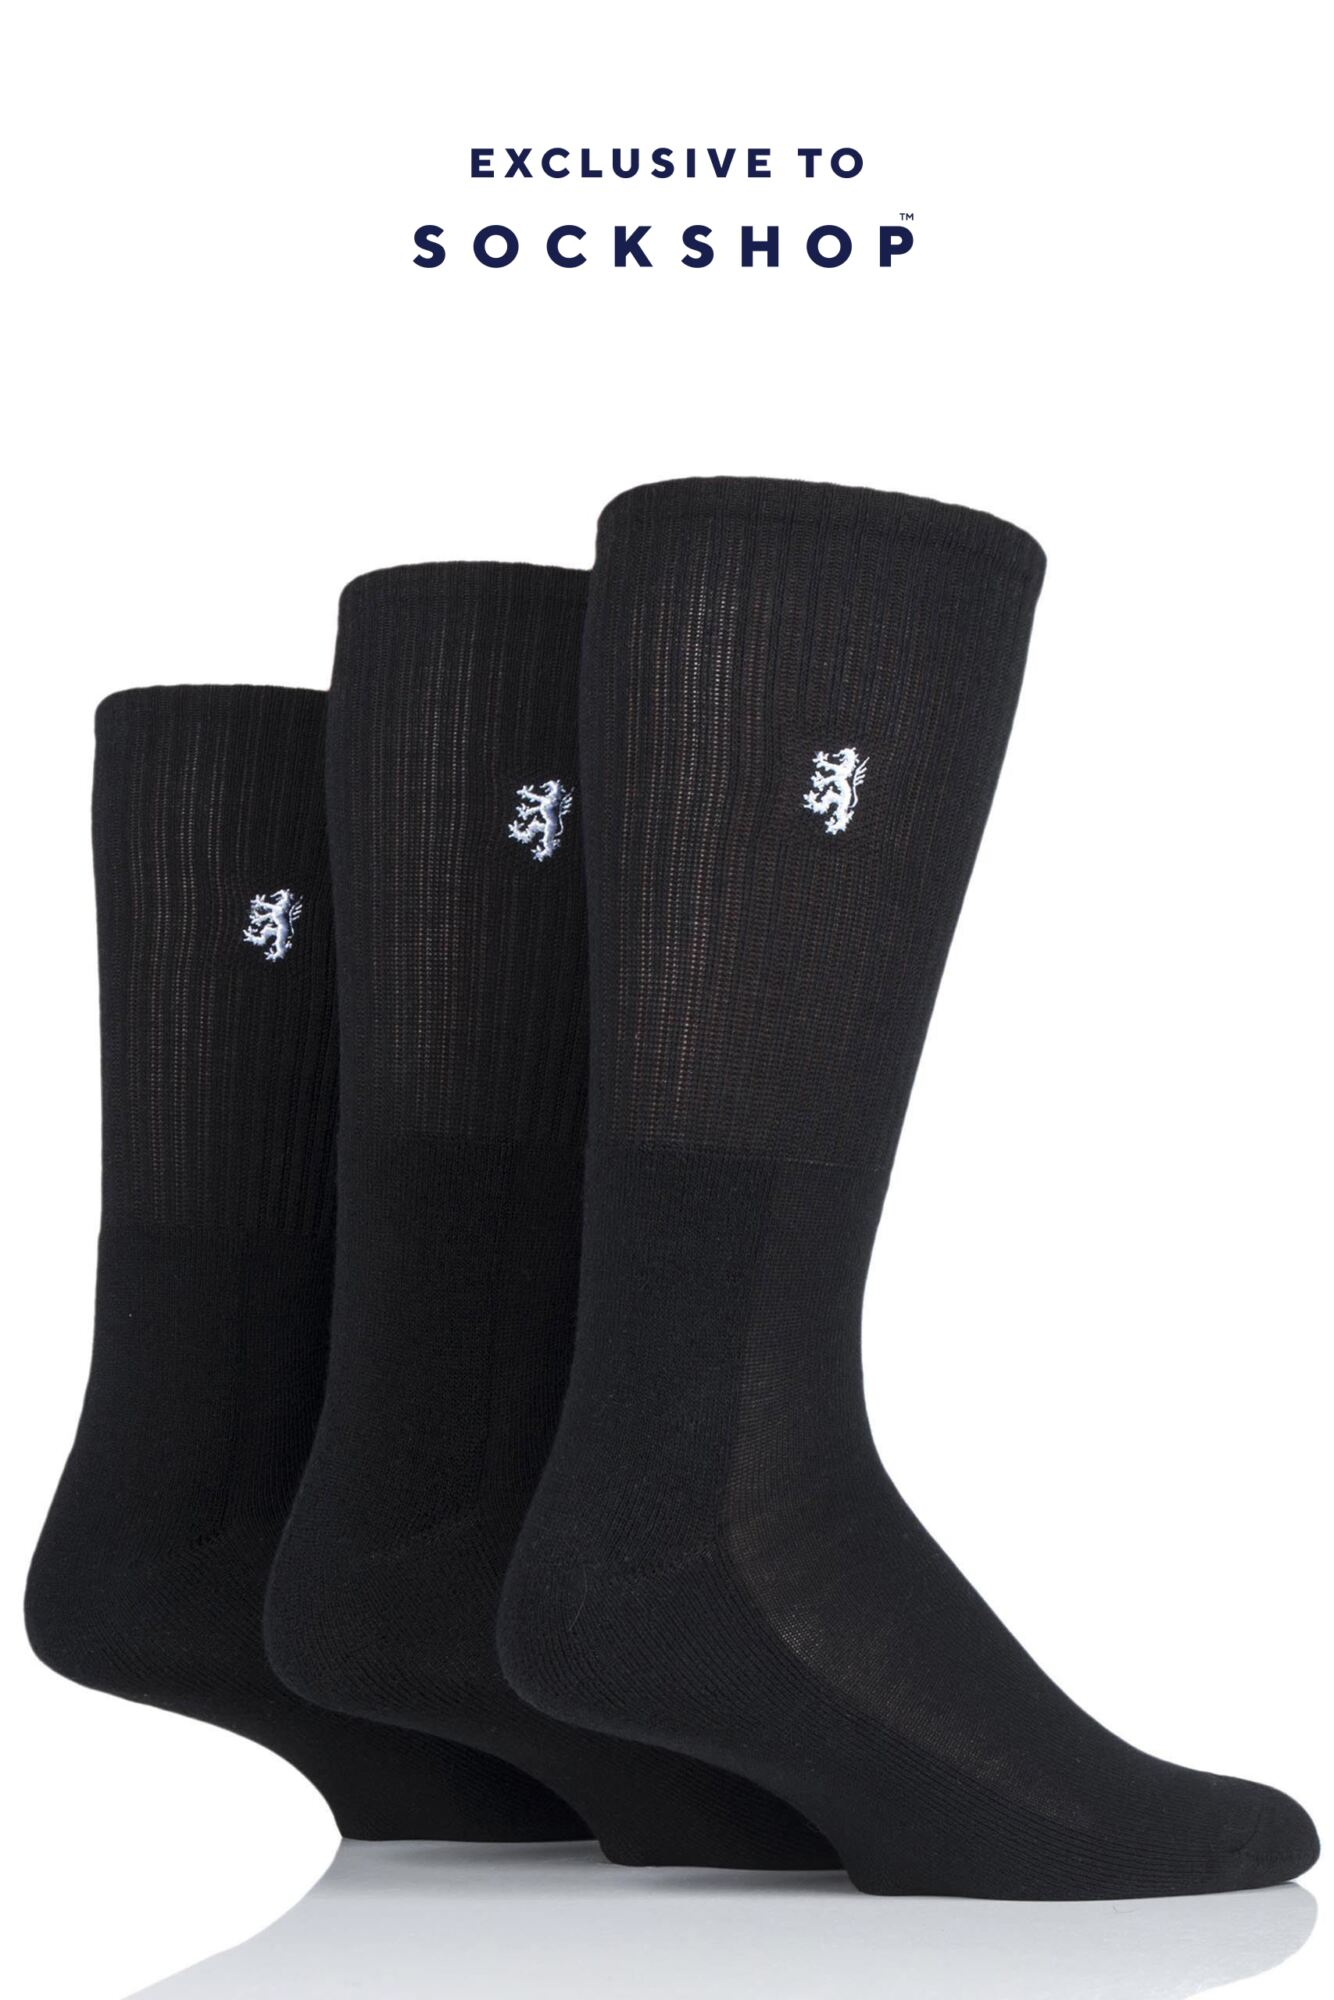 3 Pair Bamboo Cushioned Sports Socks Exclusive To SockShop Men's - Pringle